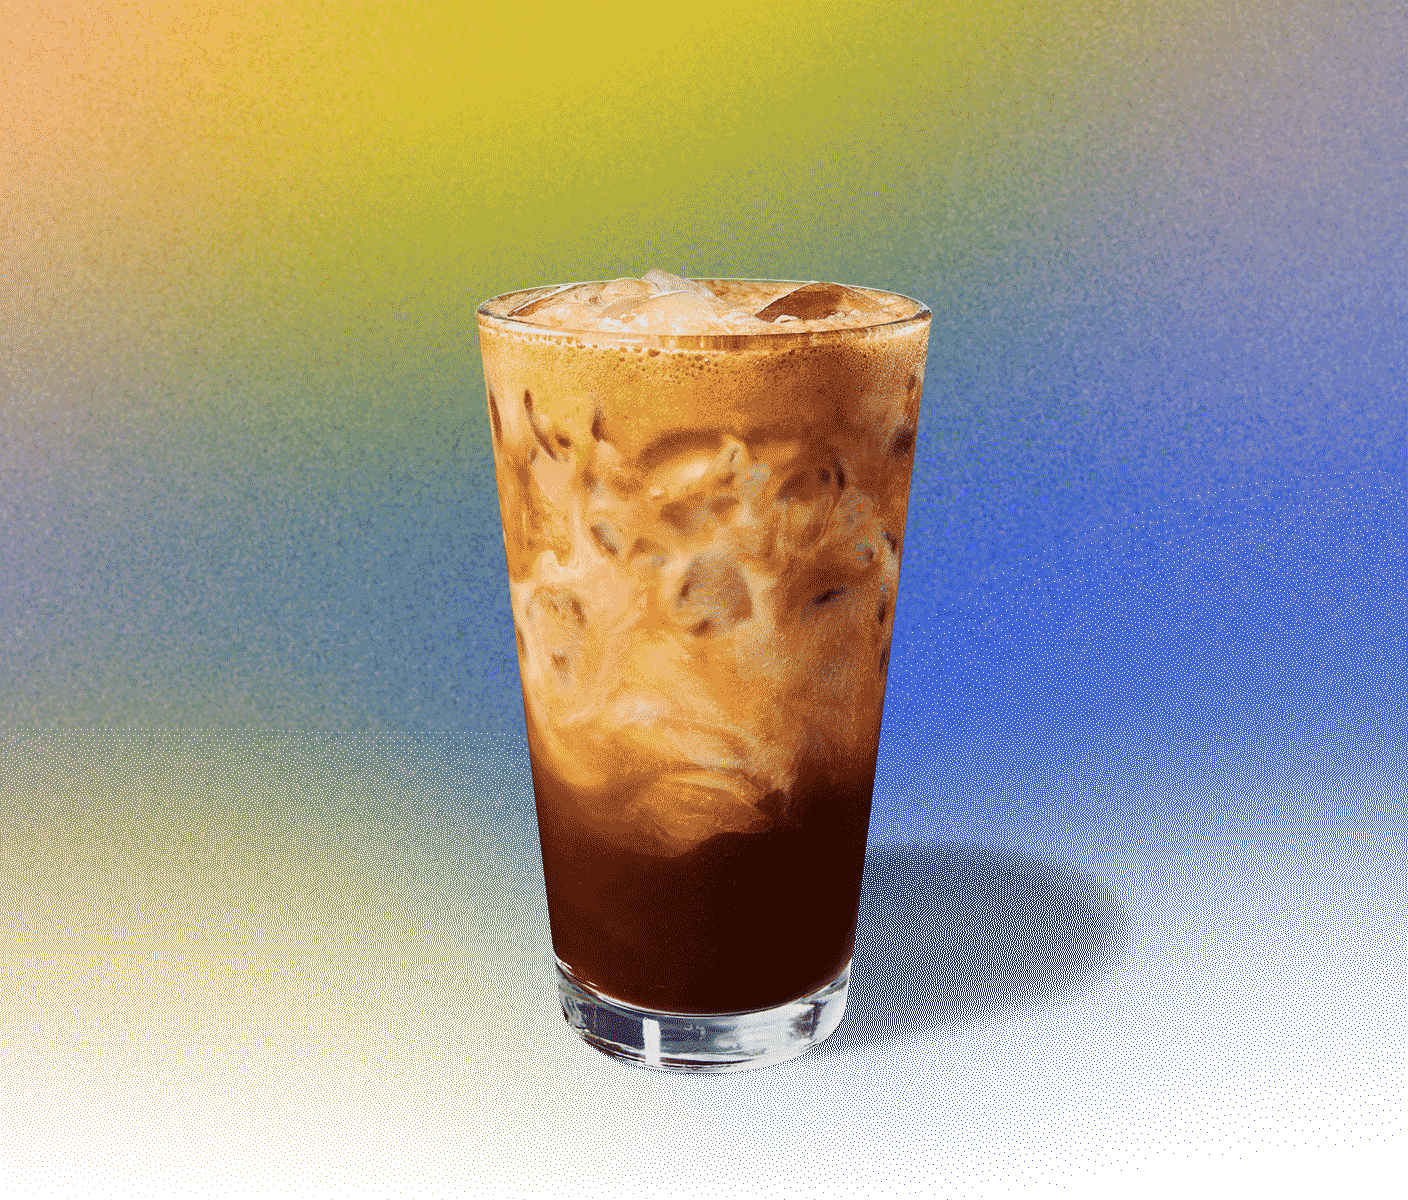 Tall iced espresso drink in a glass with swirls of creaminess throughout